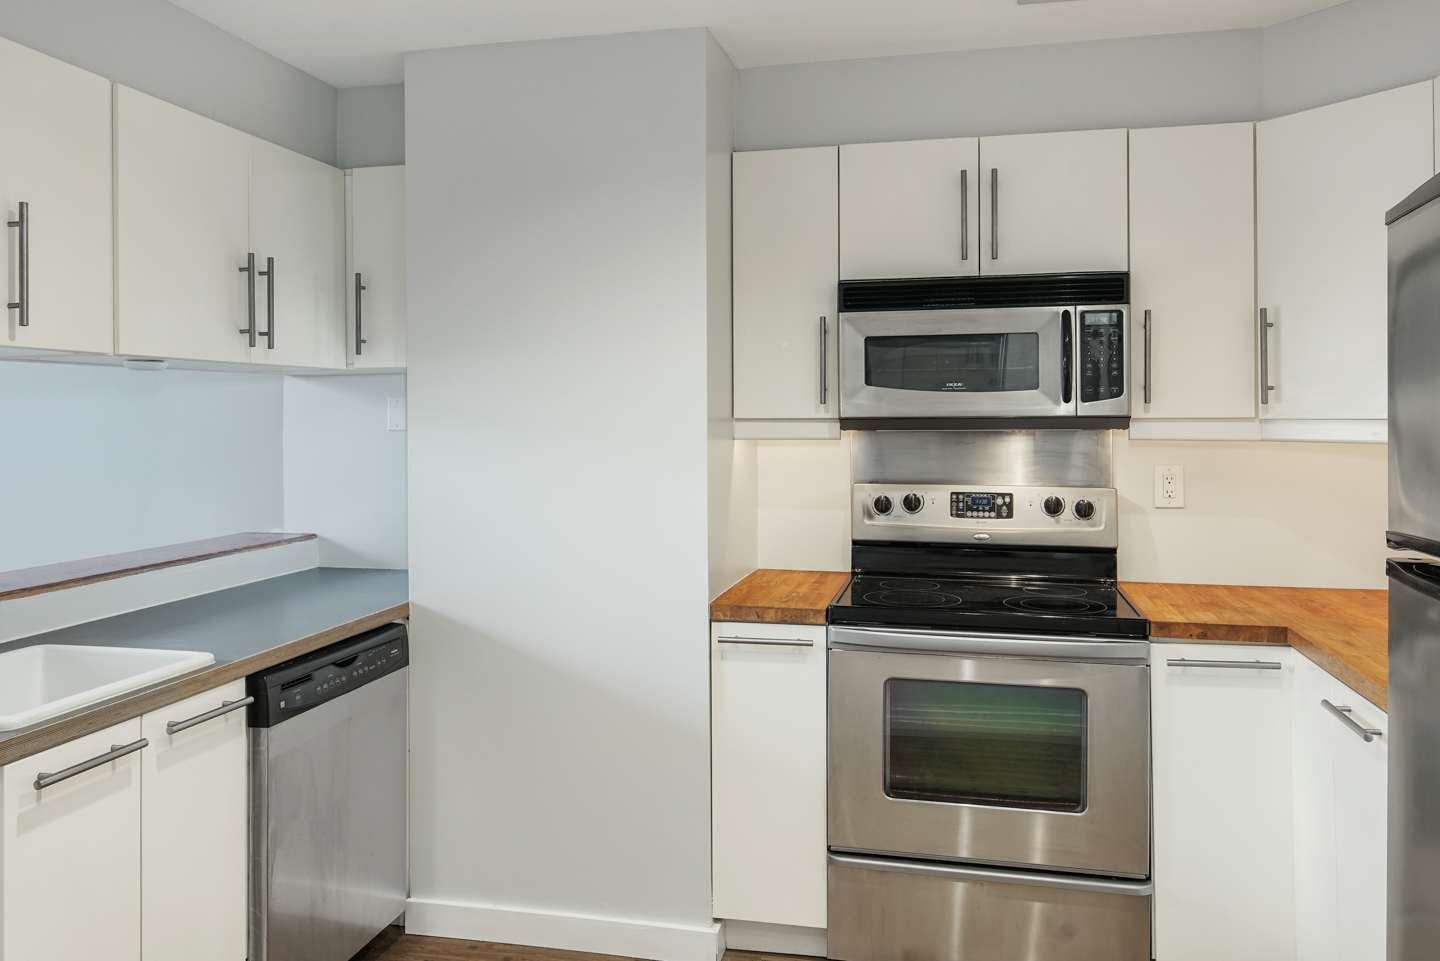 315 New St Unit 410 reshoot-MLS-2.jpg